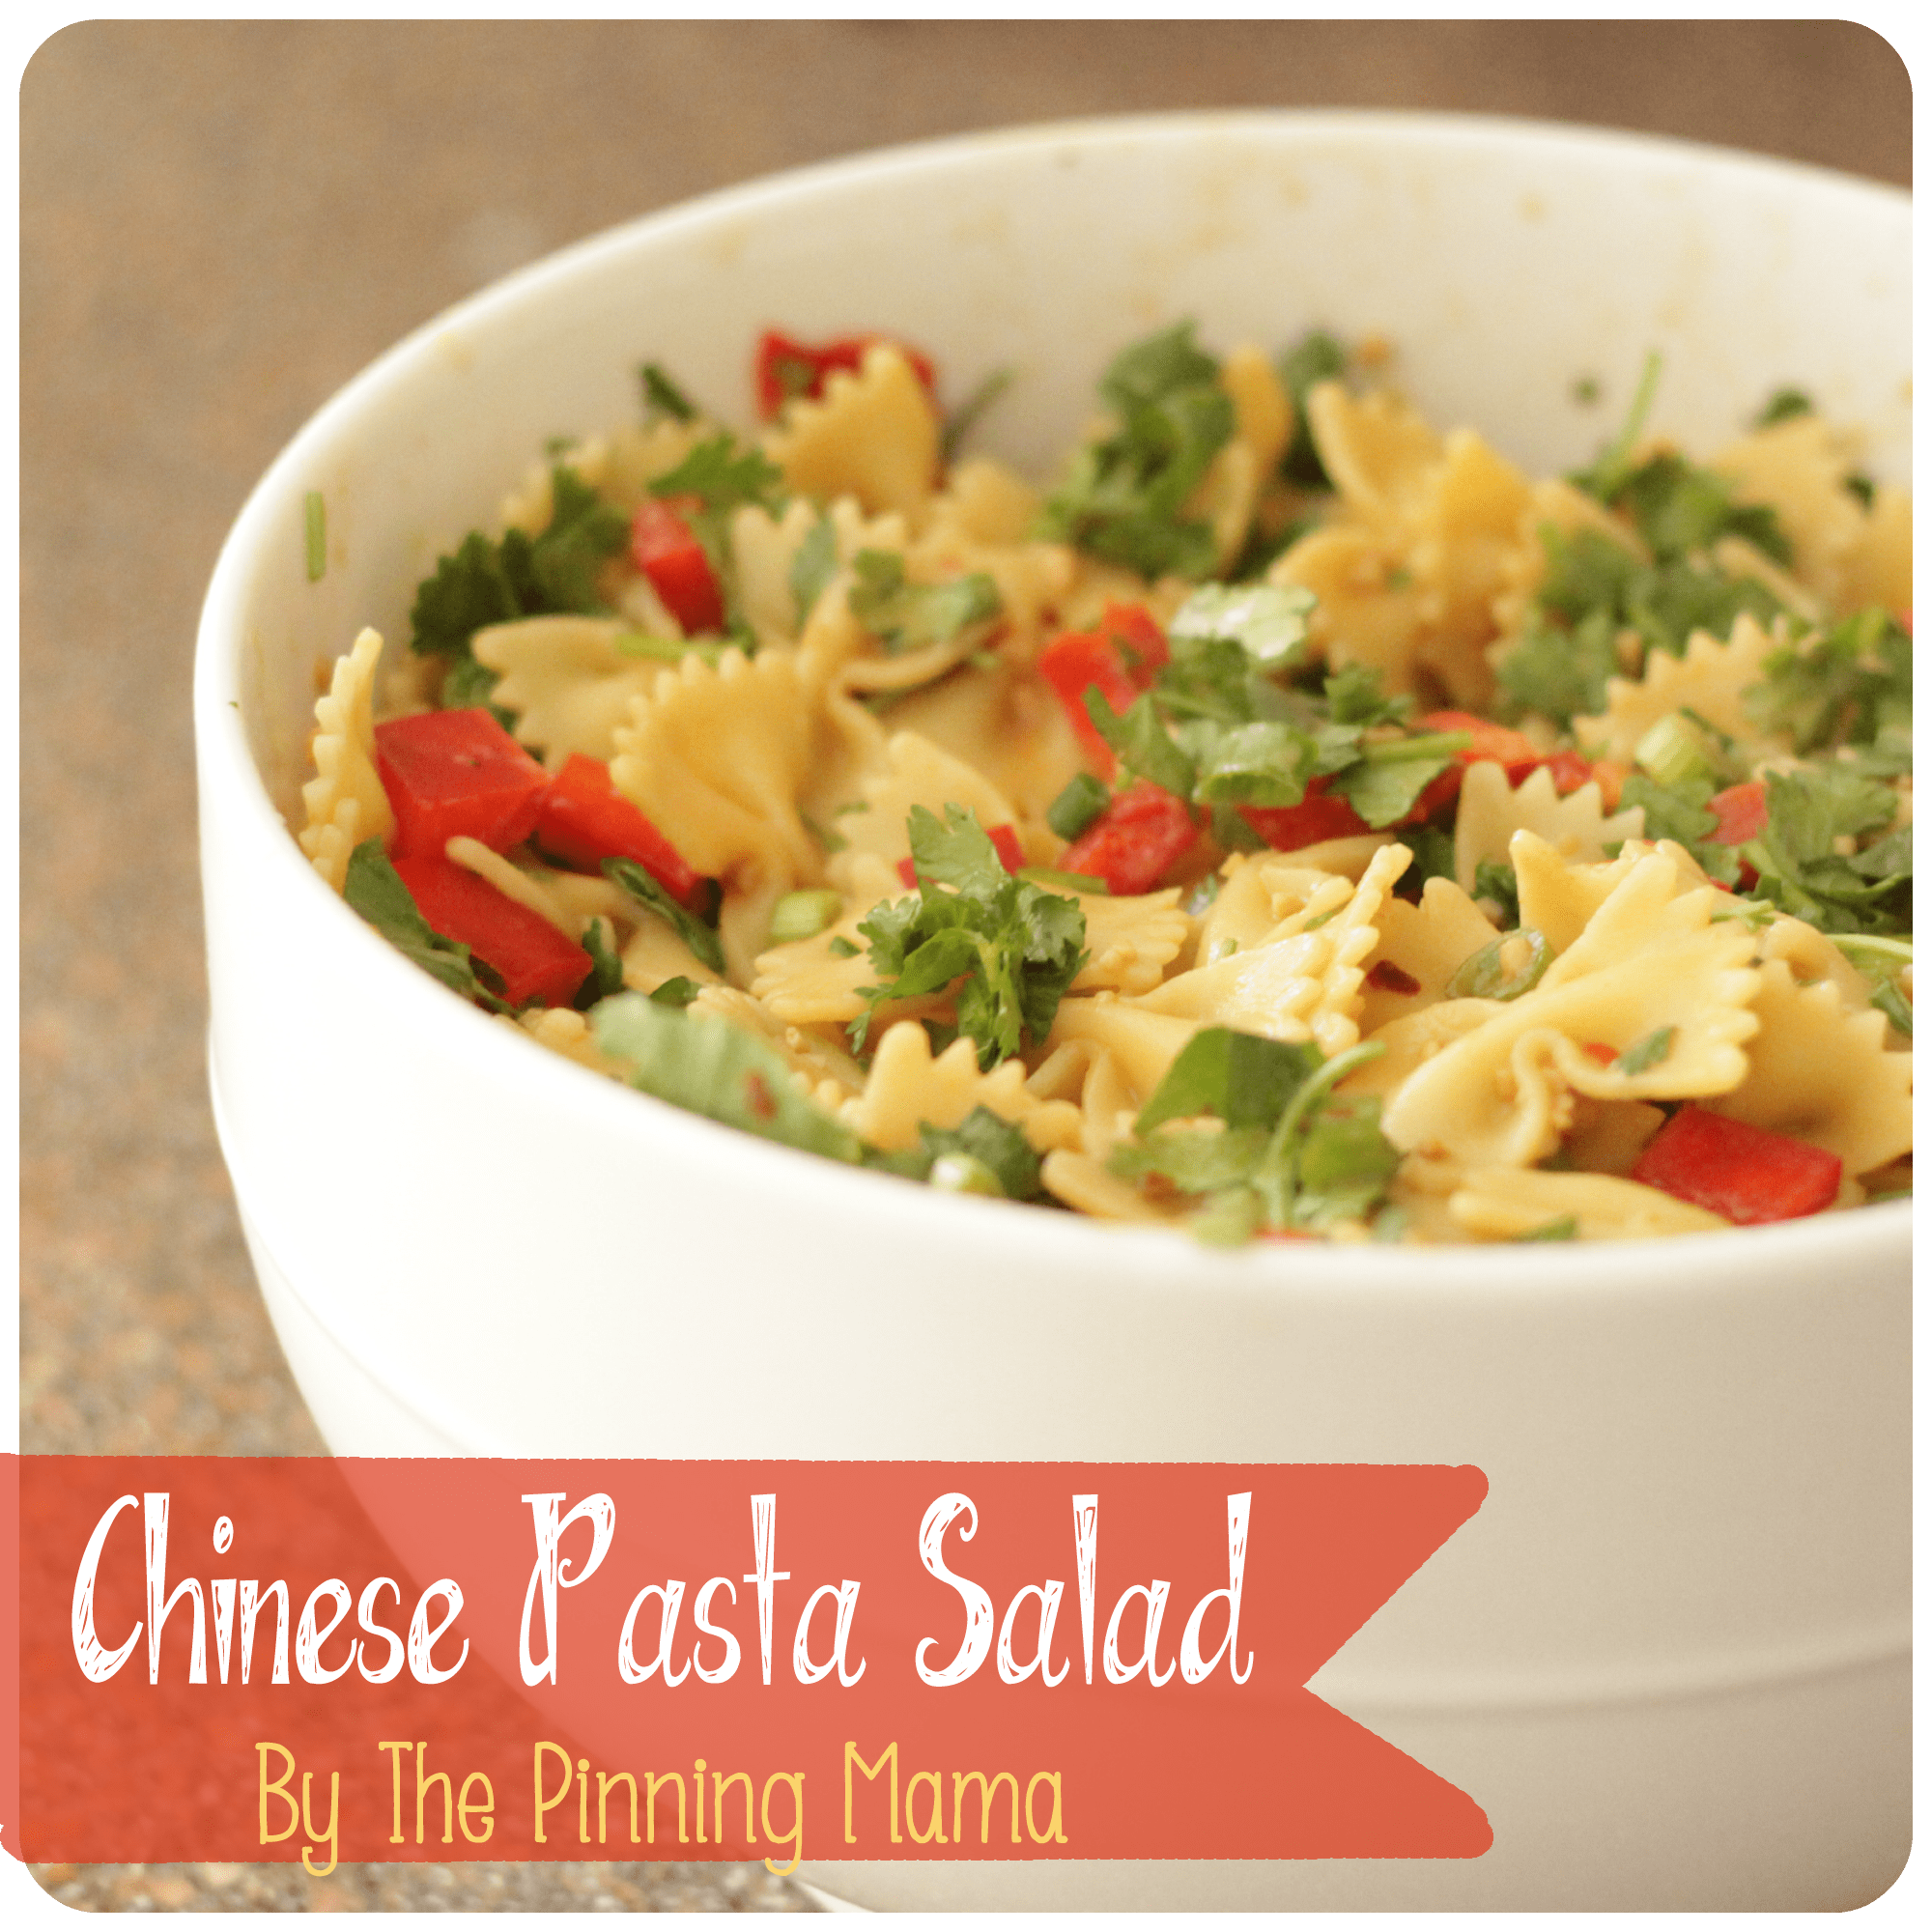 Chinese Pasta Salad By The Pinning Mama